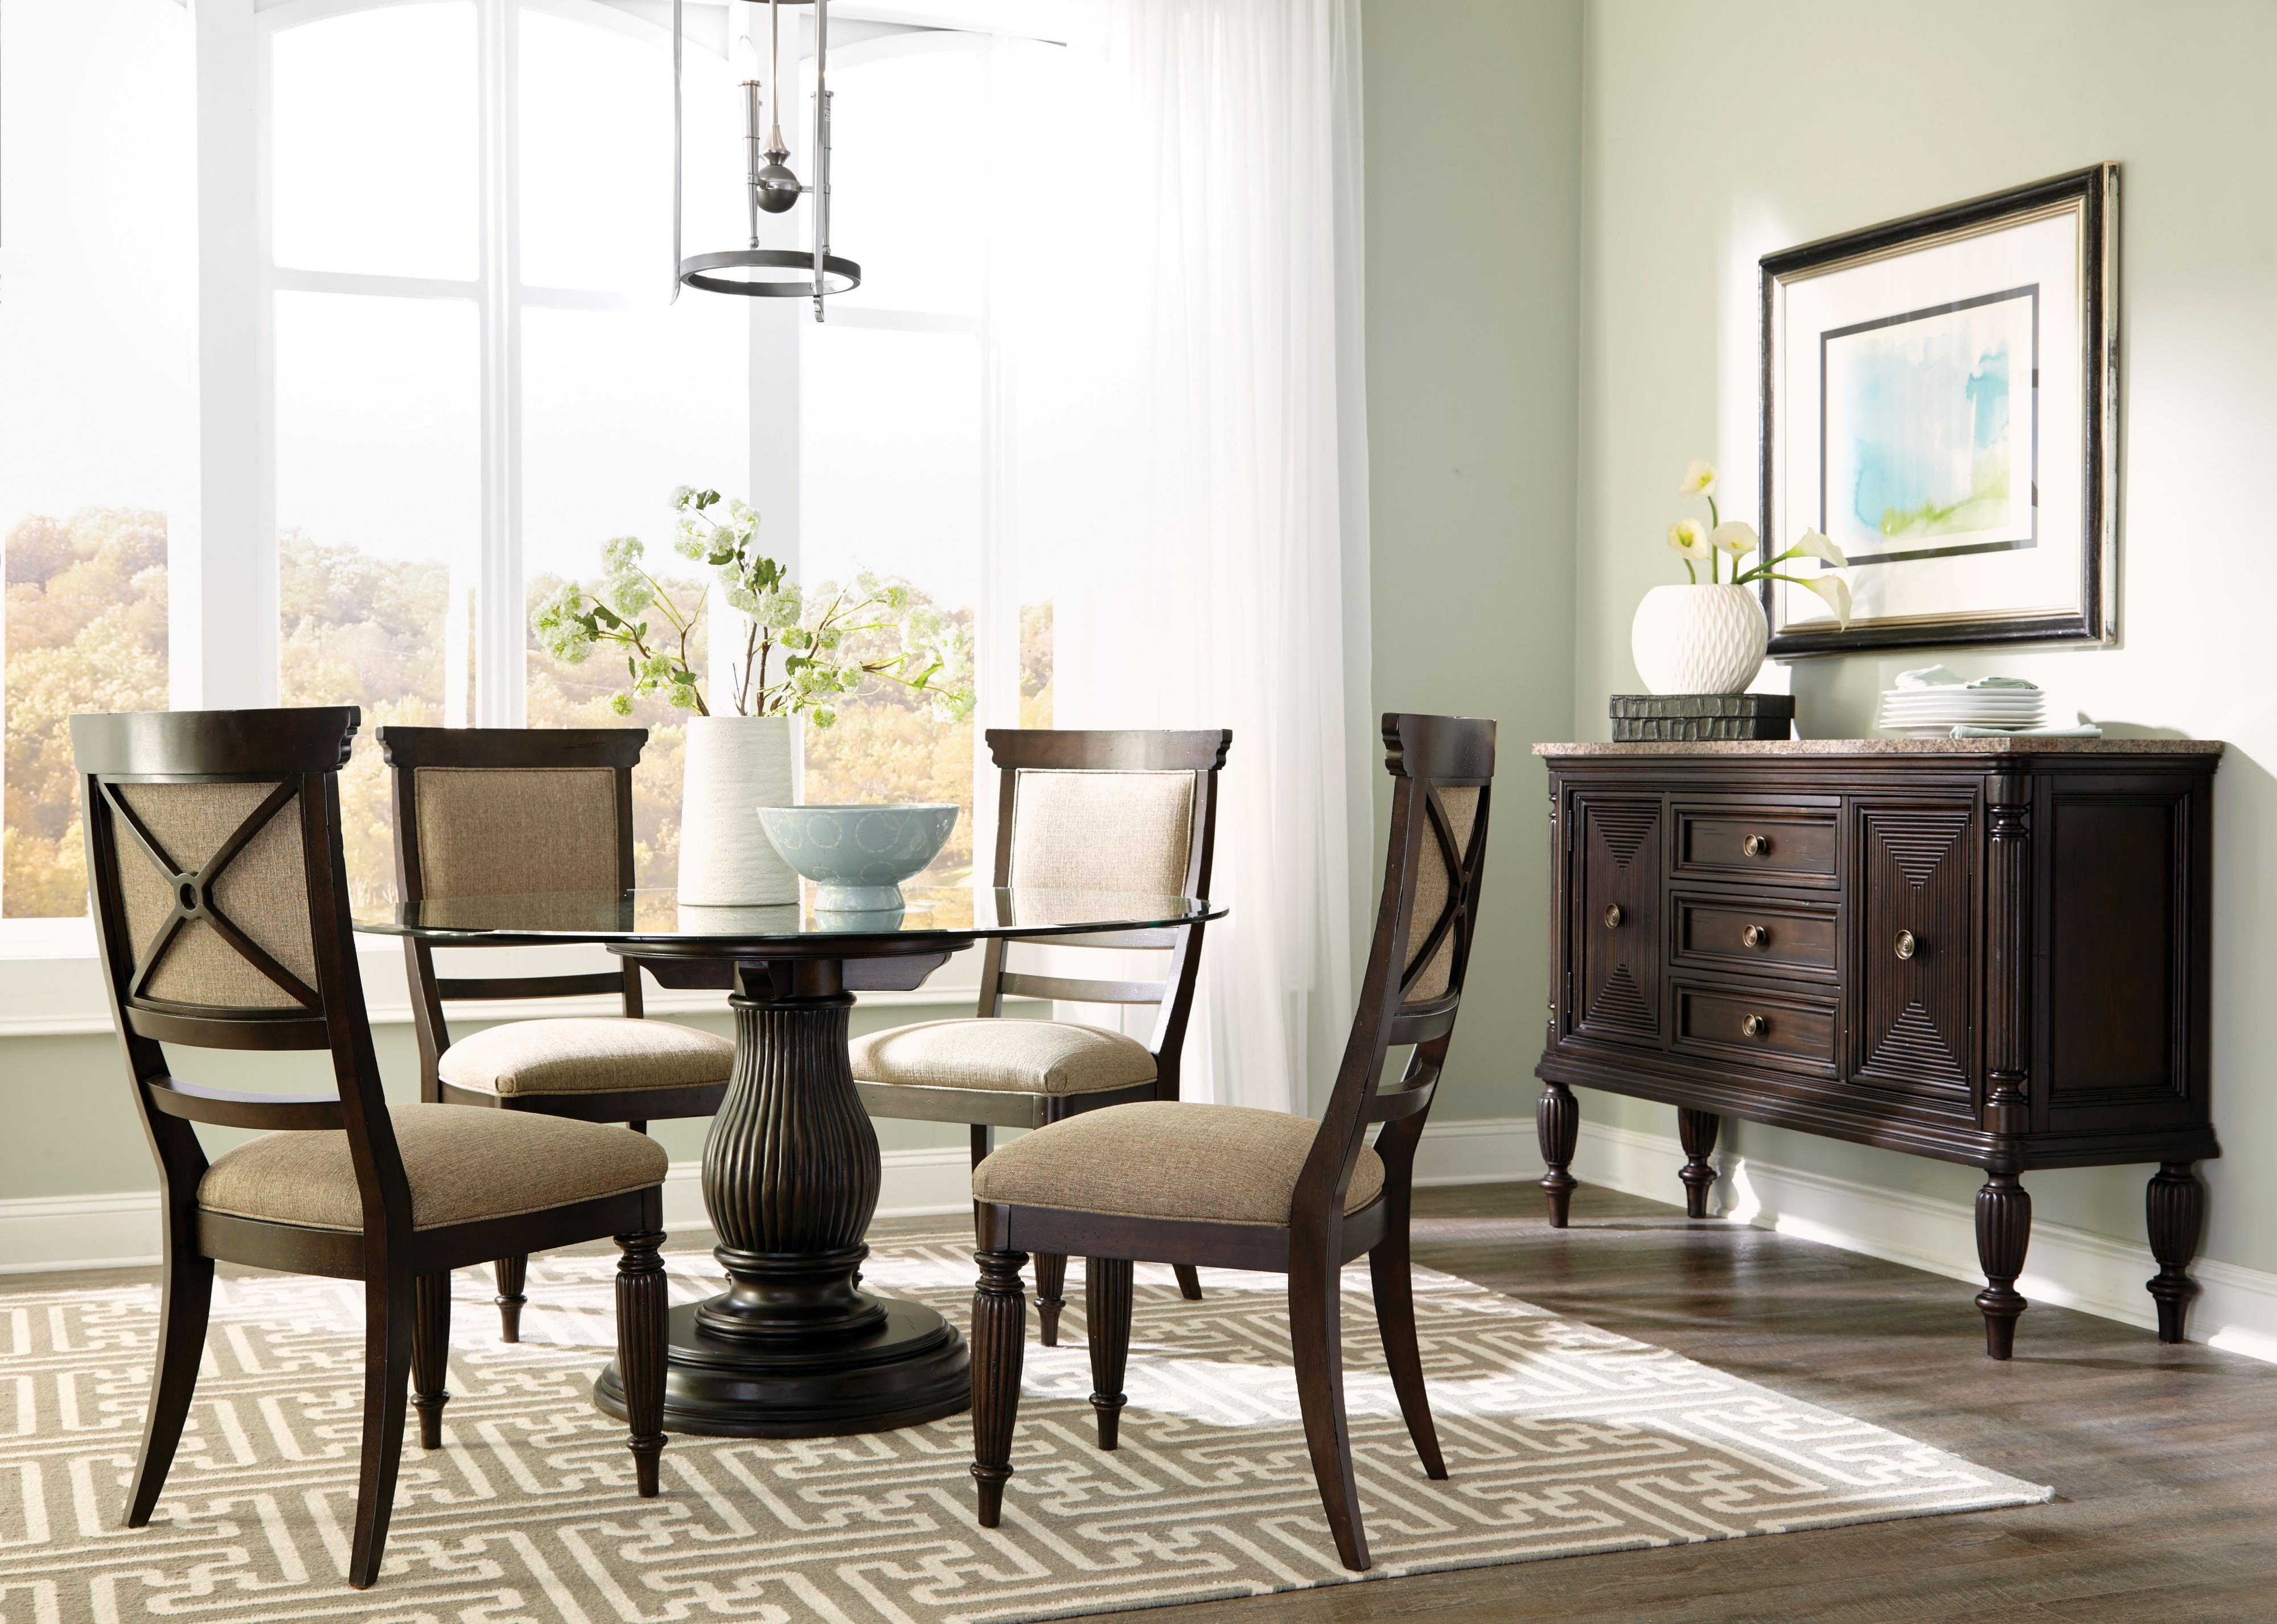 Broyhill Furniture Jessa Casual Dining Room Group - Item Number: 4980 Dining Room Group 2